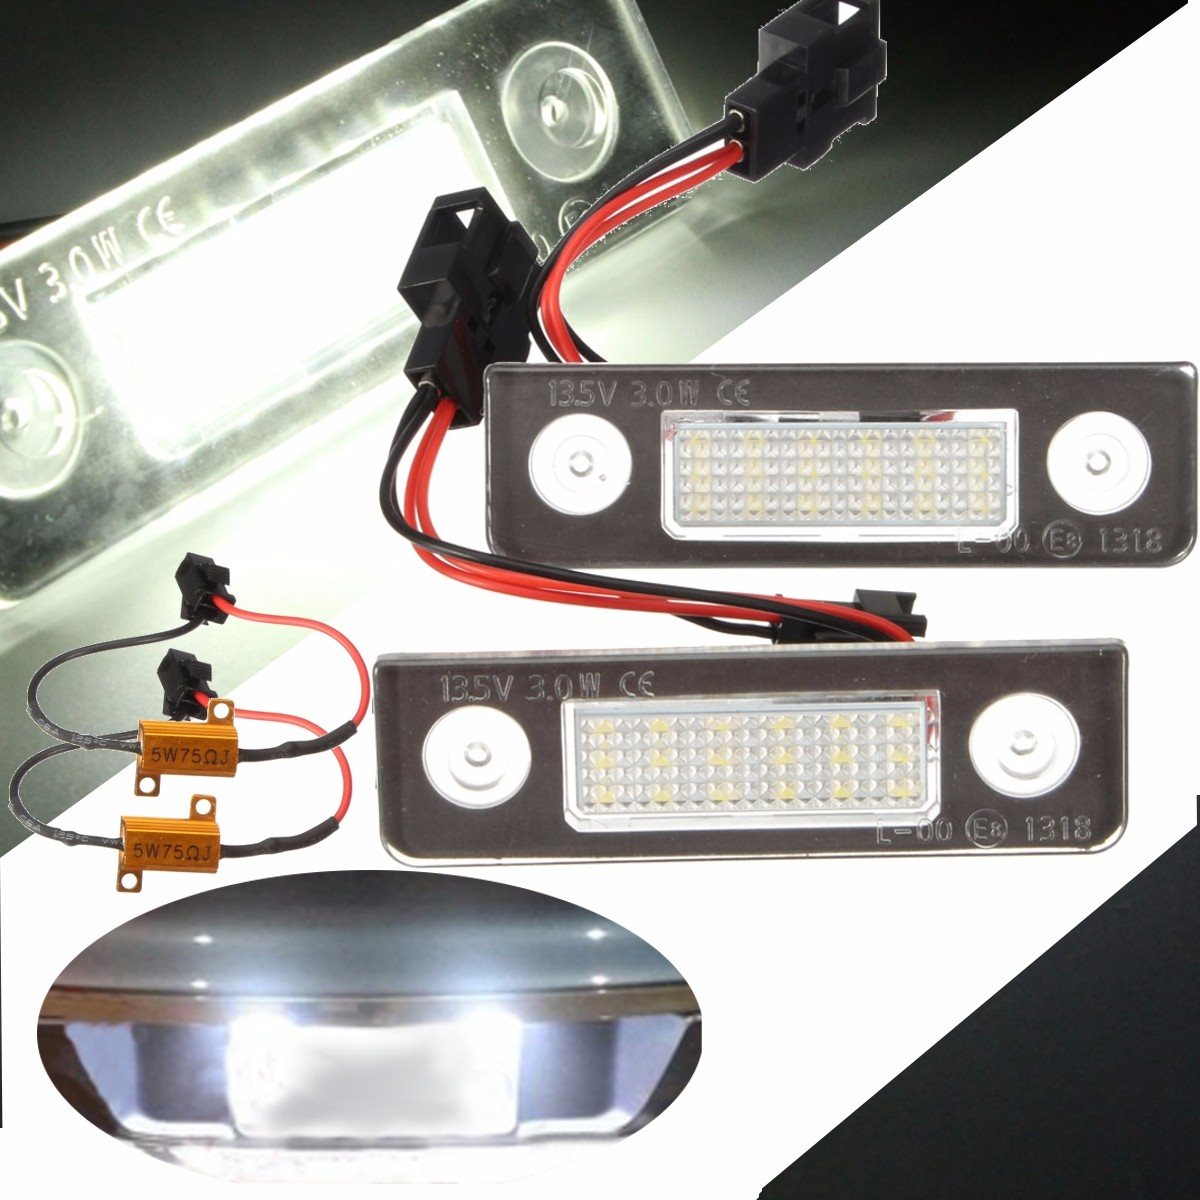 2x 13.5V 3W 7000k White Canbus Error Free LED License Plate Light Number Plate Light for Skoda /Octavia /Roomster 5J 2x led car styling canbus no error code license plate lamp for smart fortwo rear number plate light auto accessory